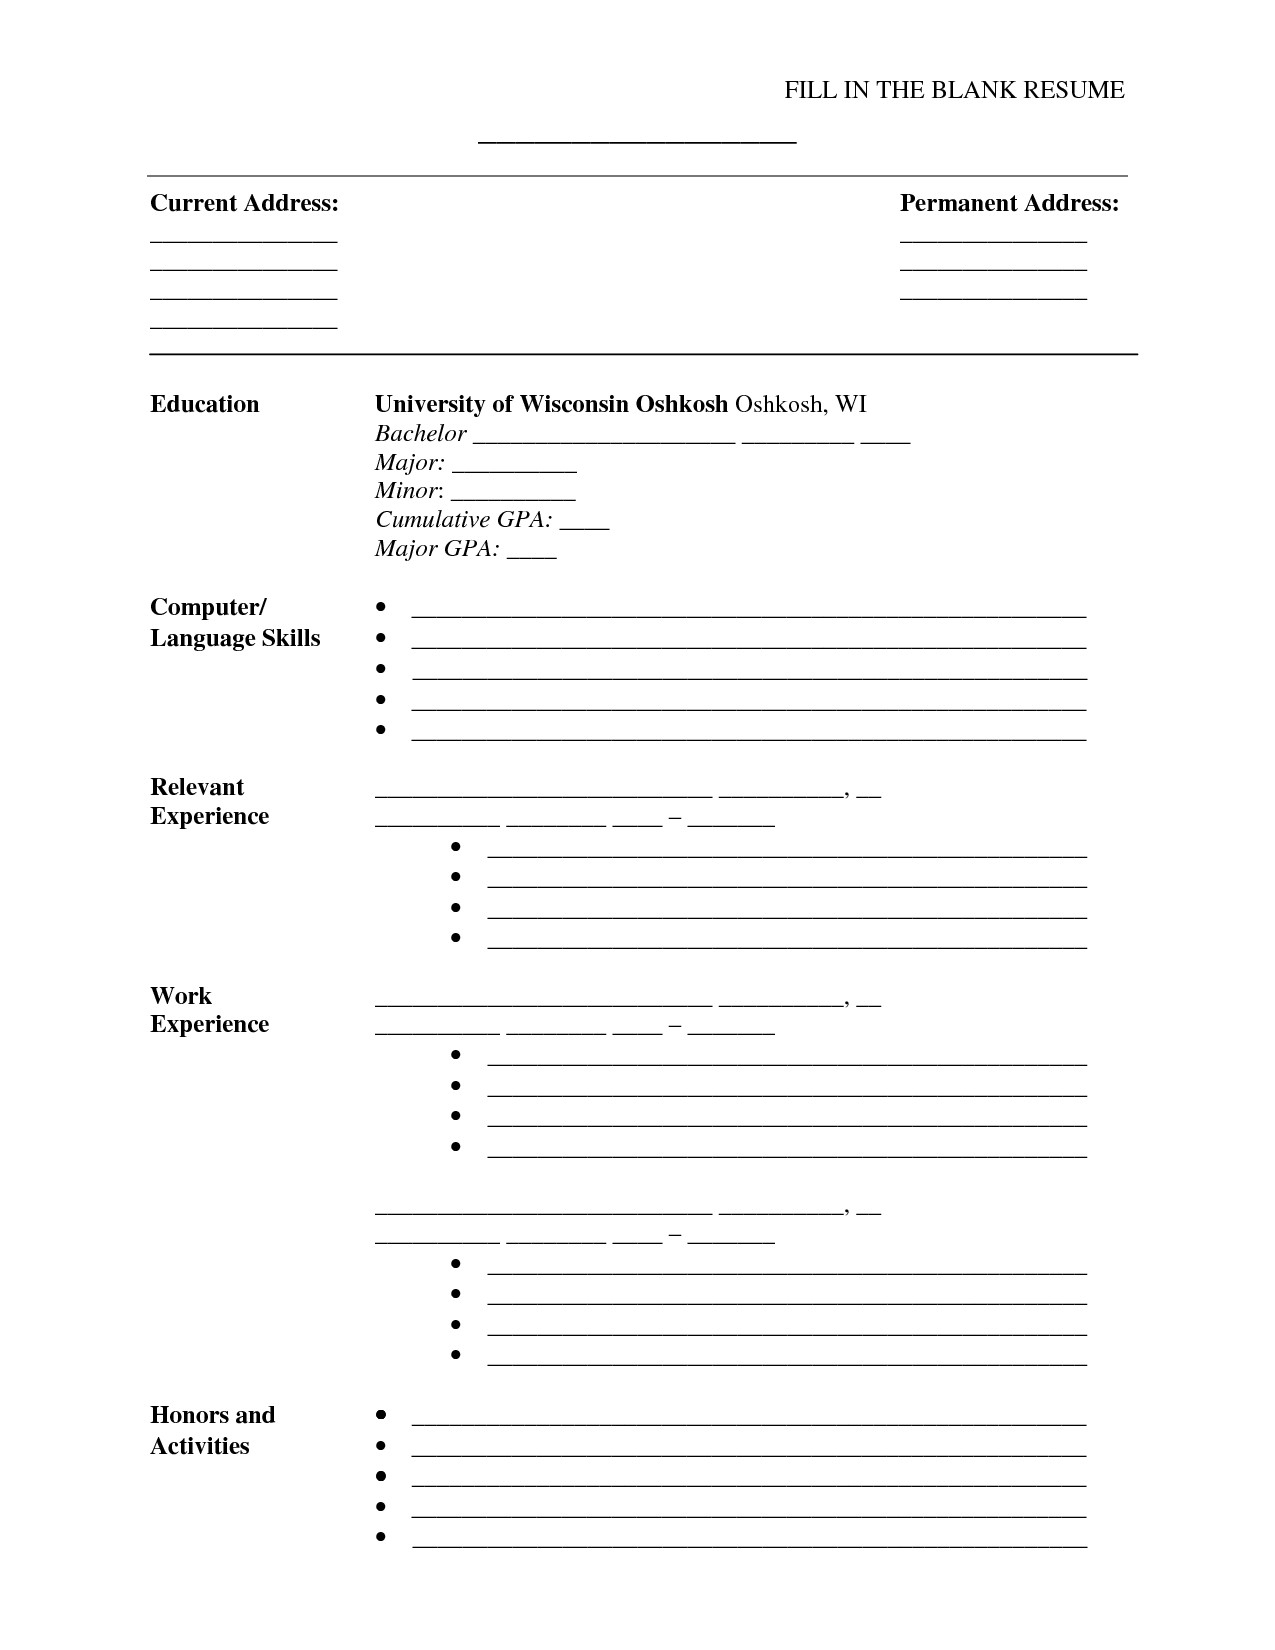 Free Printable Resume Builder Templates - Viaweb.co - Free Printable Resume Builder